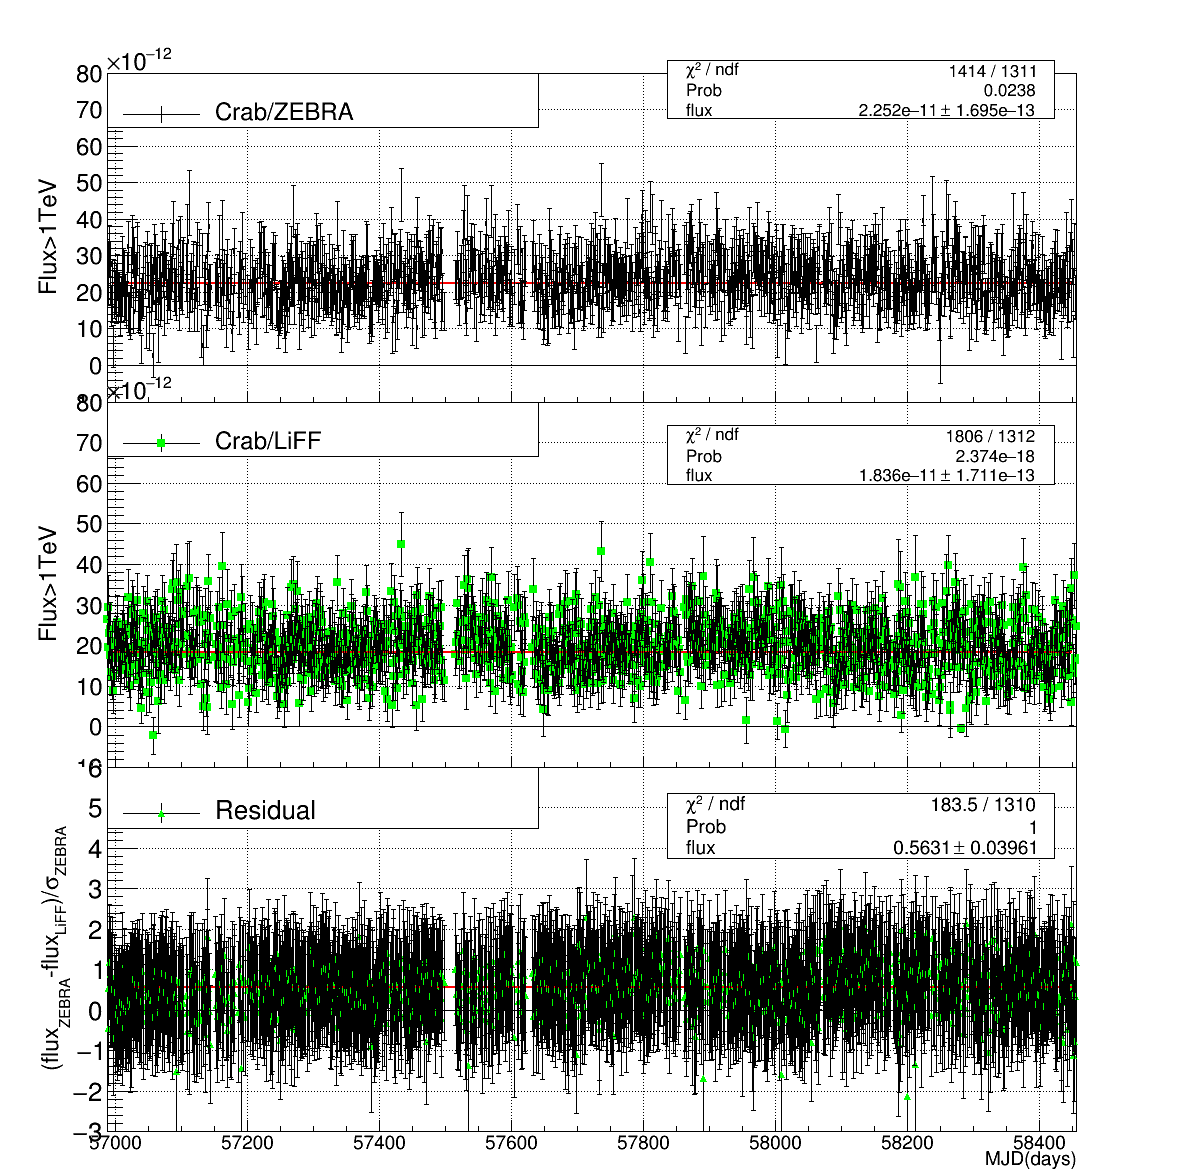 Crab LC comparison using ZEBRA(top) and liff (middle). The difference (bottom) taken between ZEBRA and liff divided by the flux uncertainty of ZEBRA shows the consistency between both flux estimation methods.